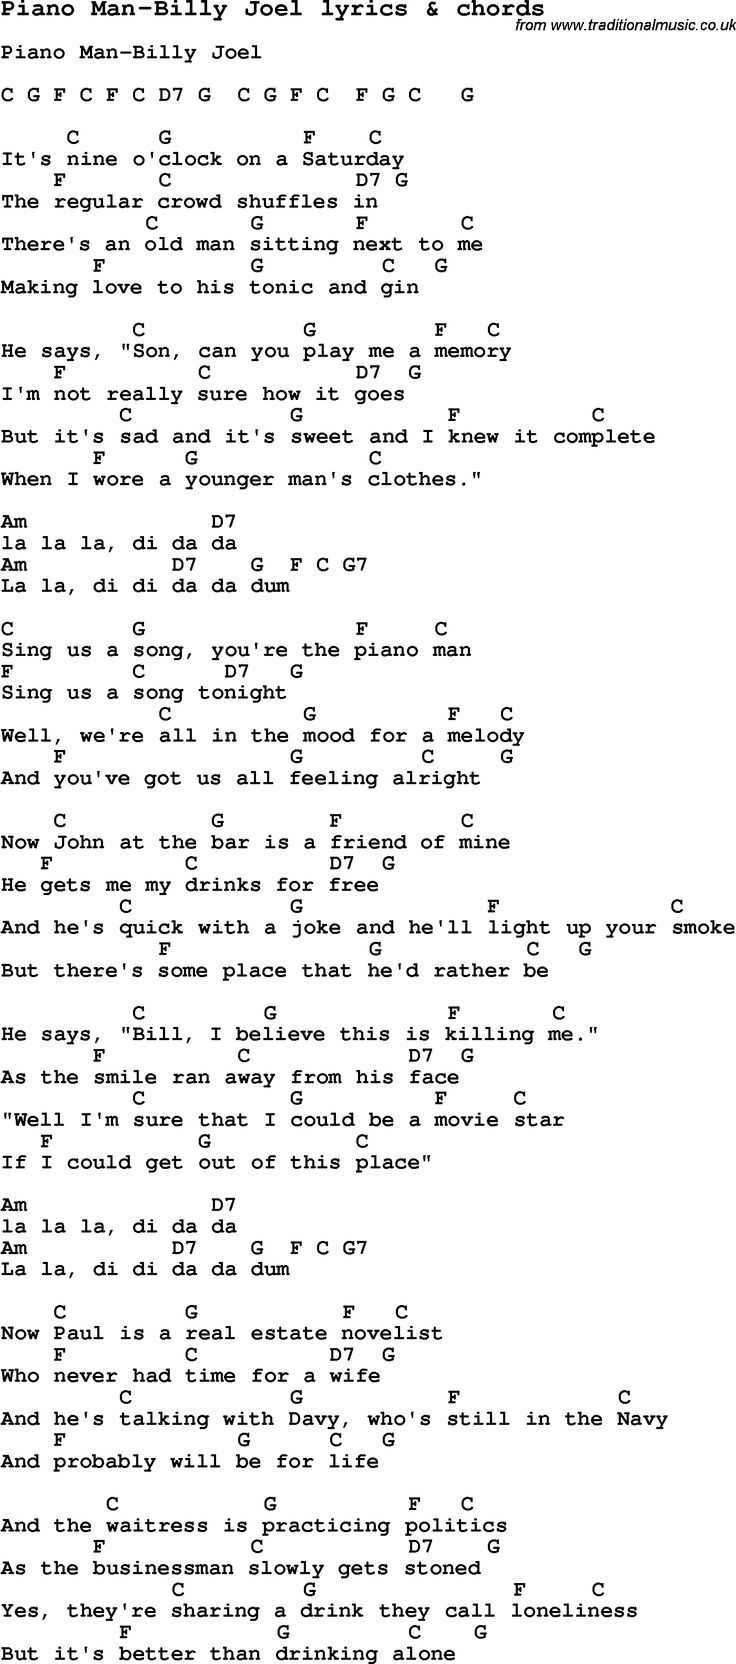 Love song lyrics for piano man billy joel with chords for ukulele love song lyrics for piano man billy joel with chords for ukulele guitar hexwebz Images